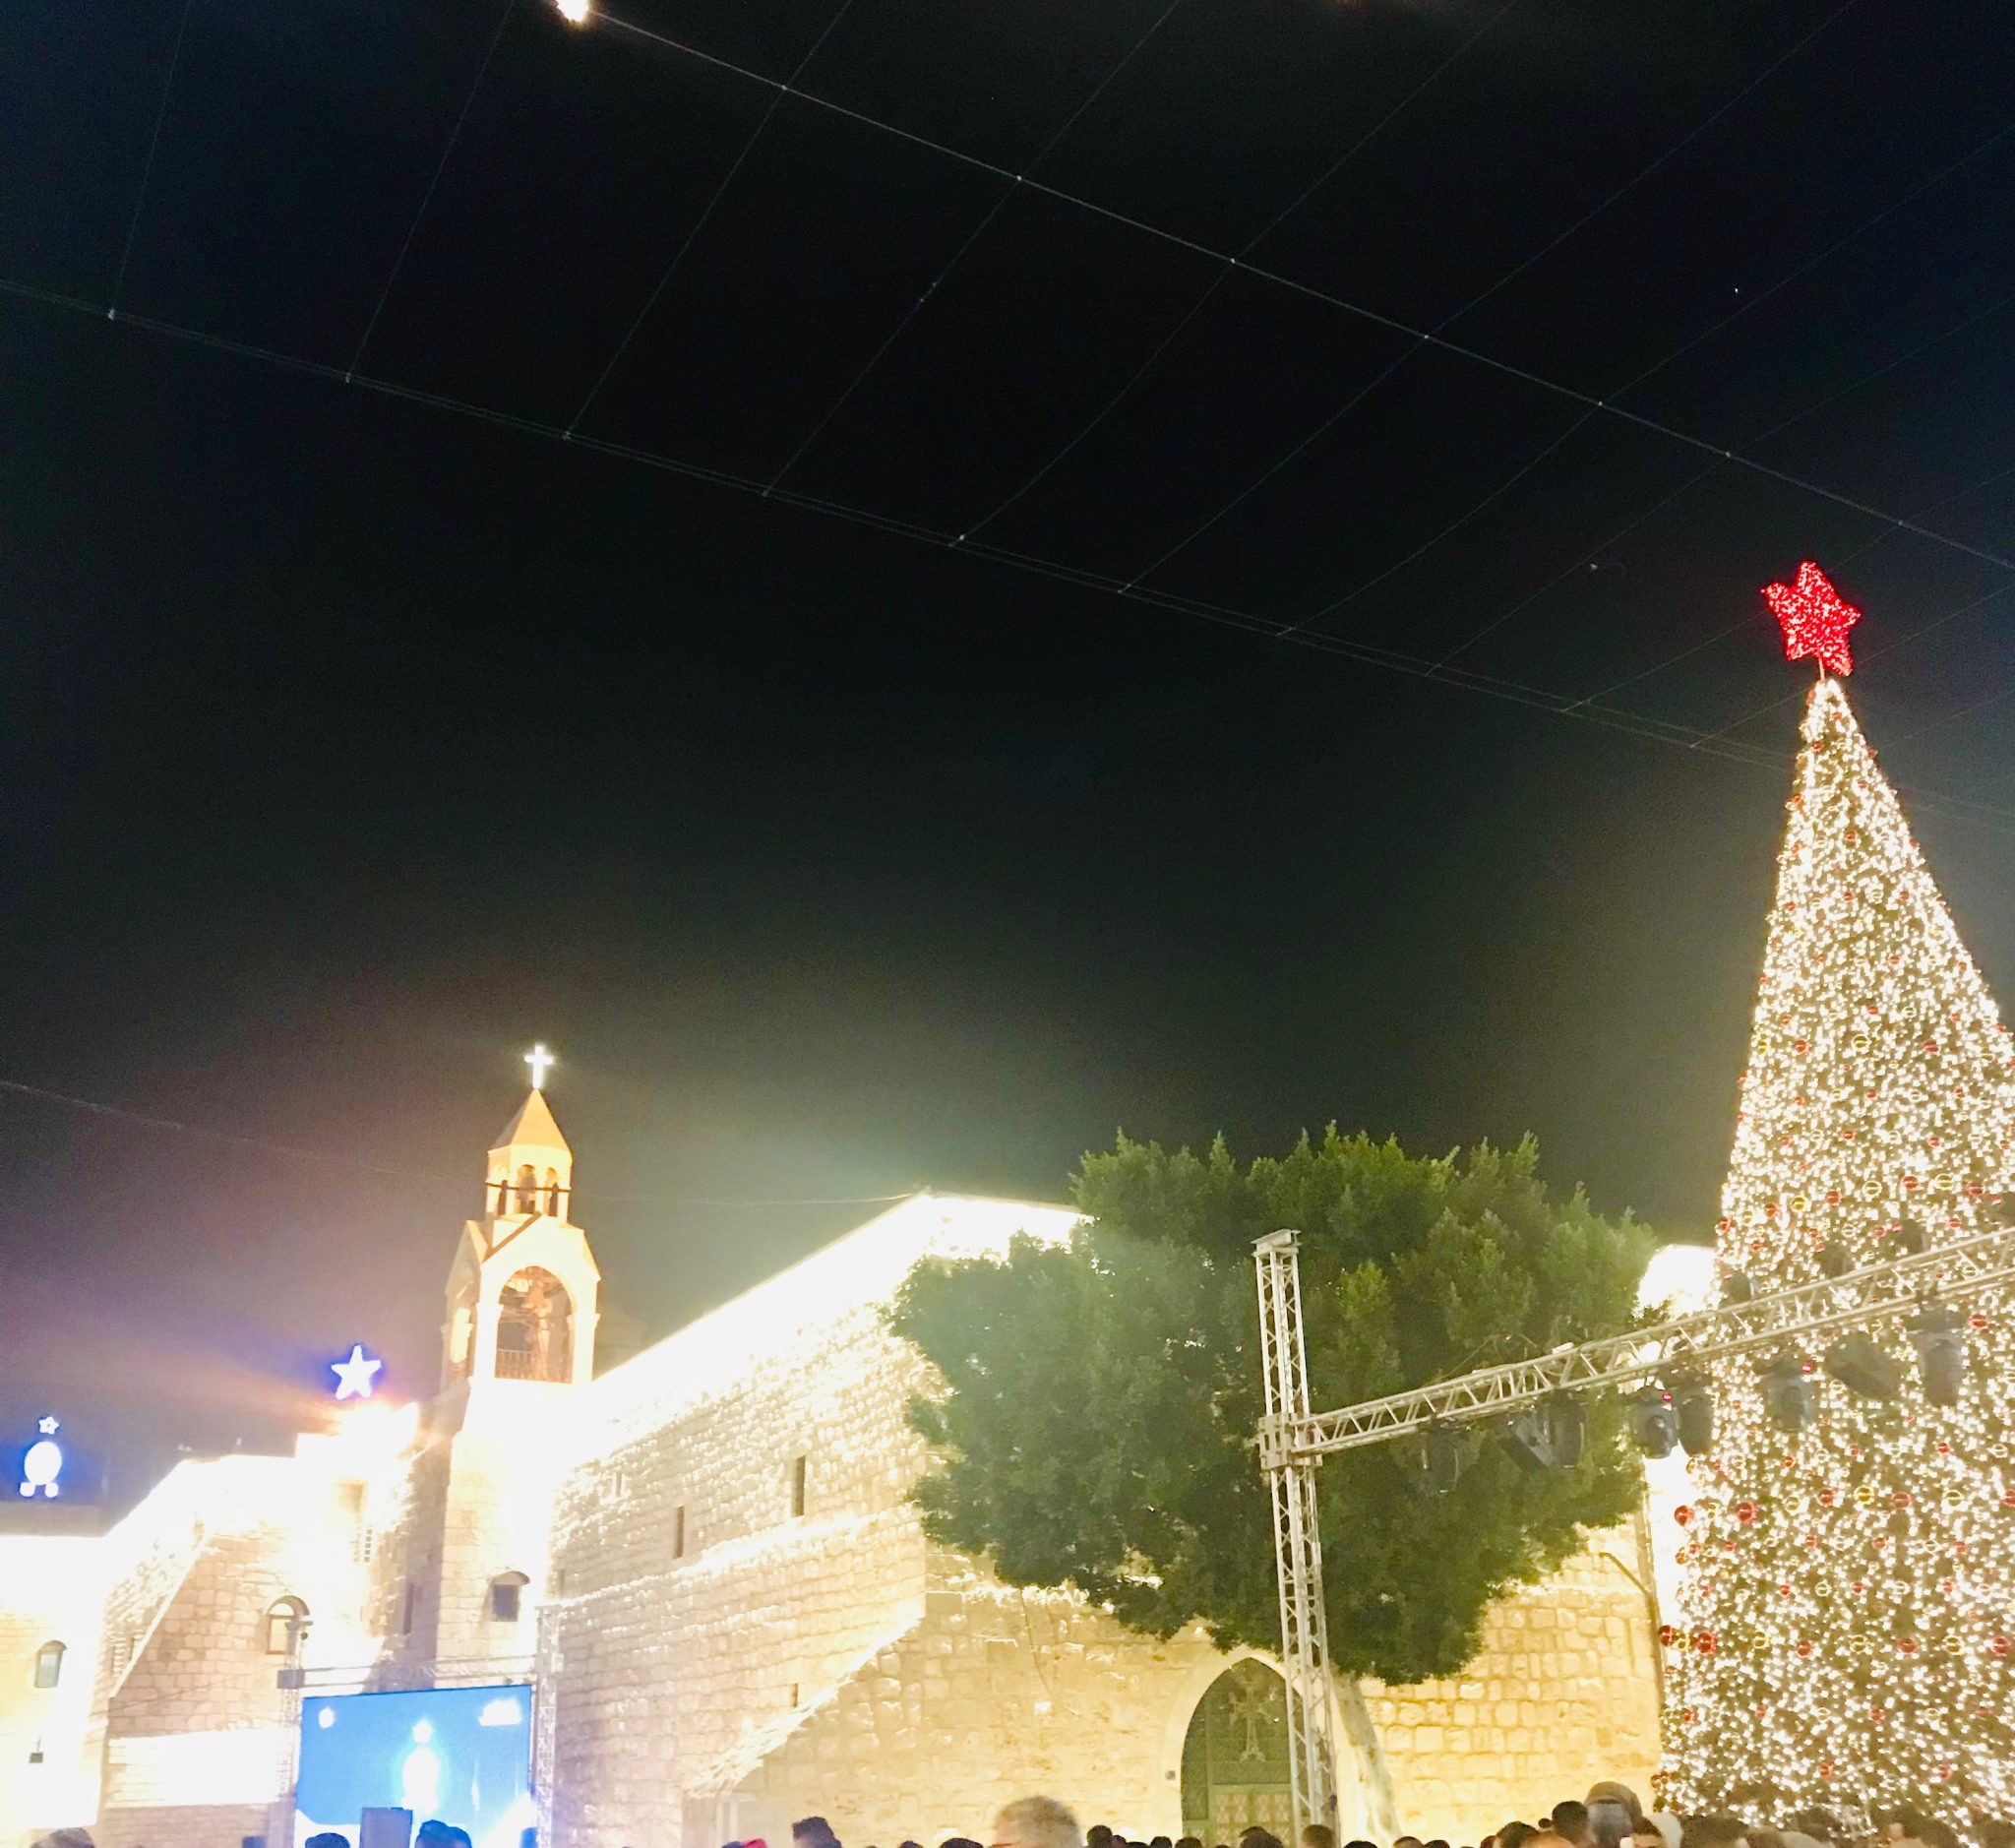 manger square in bethlehem on christmas eve